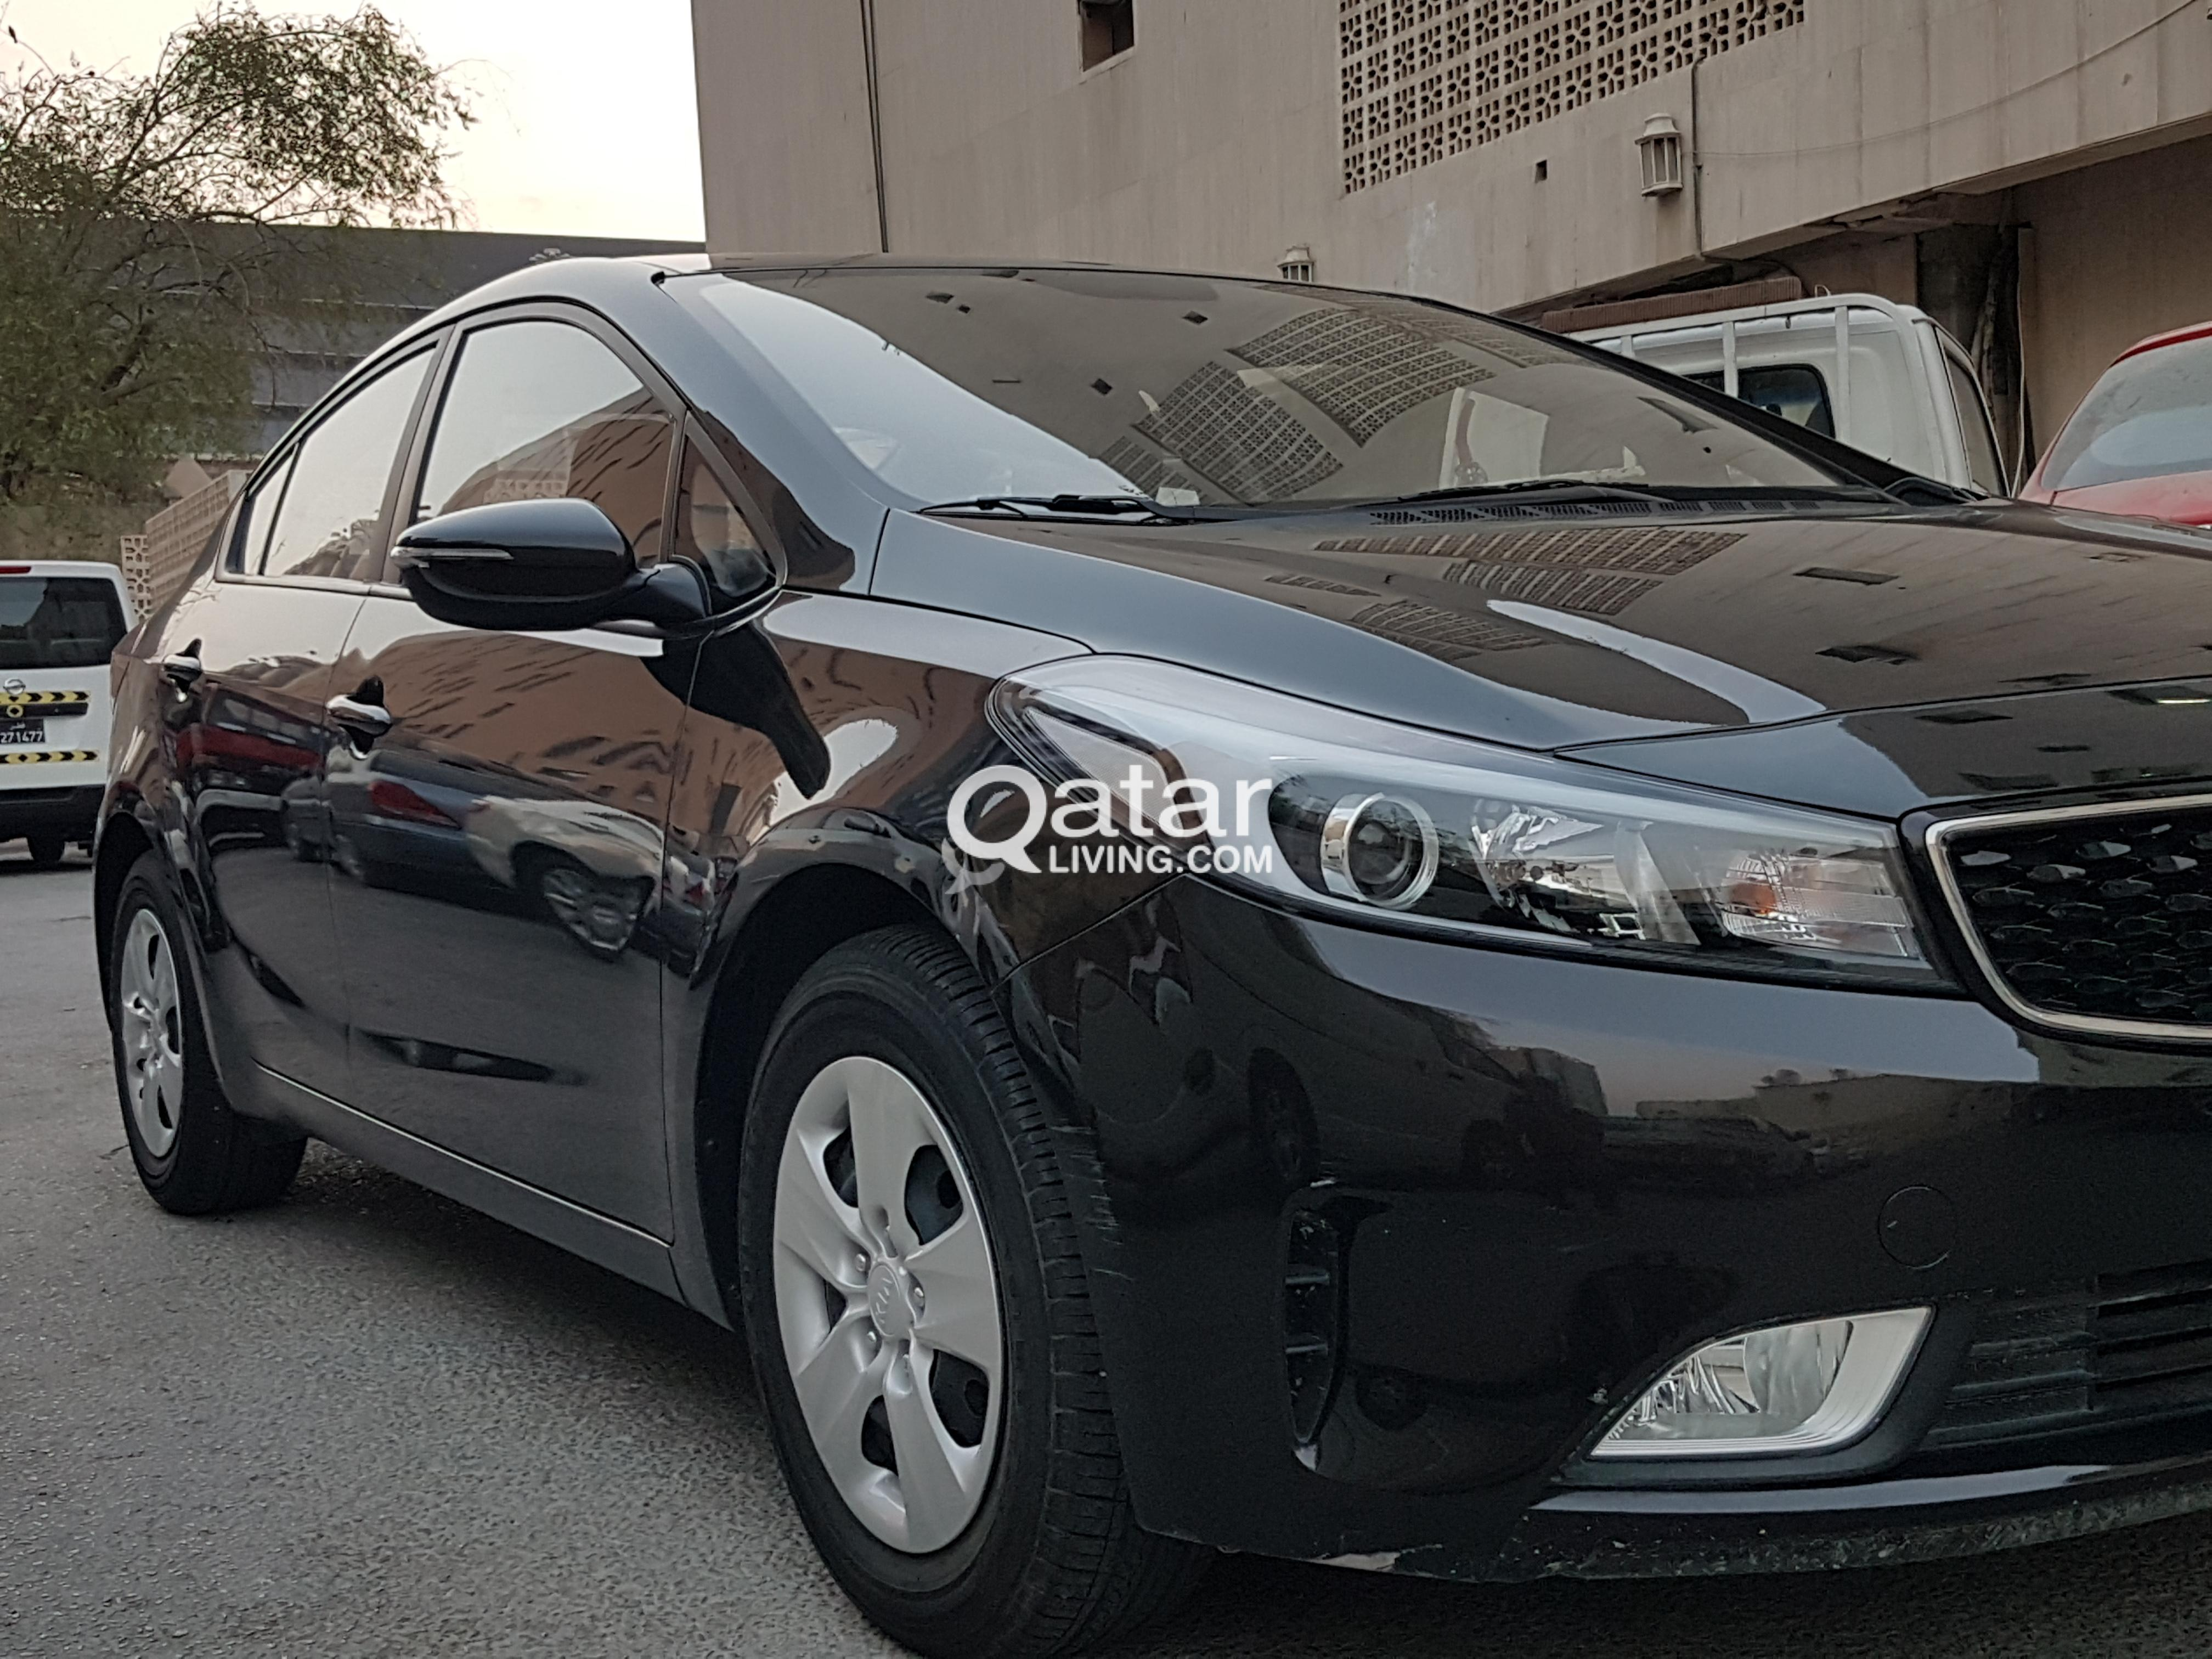 Lease To Own Car >> Lease To Own Qatar Living